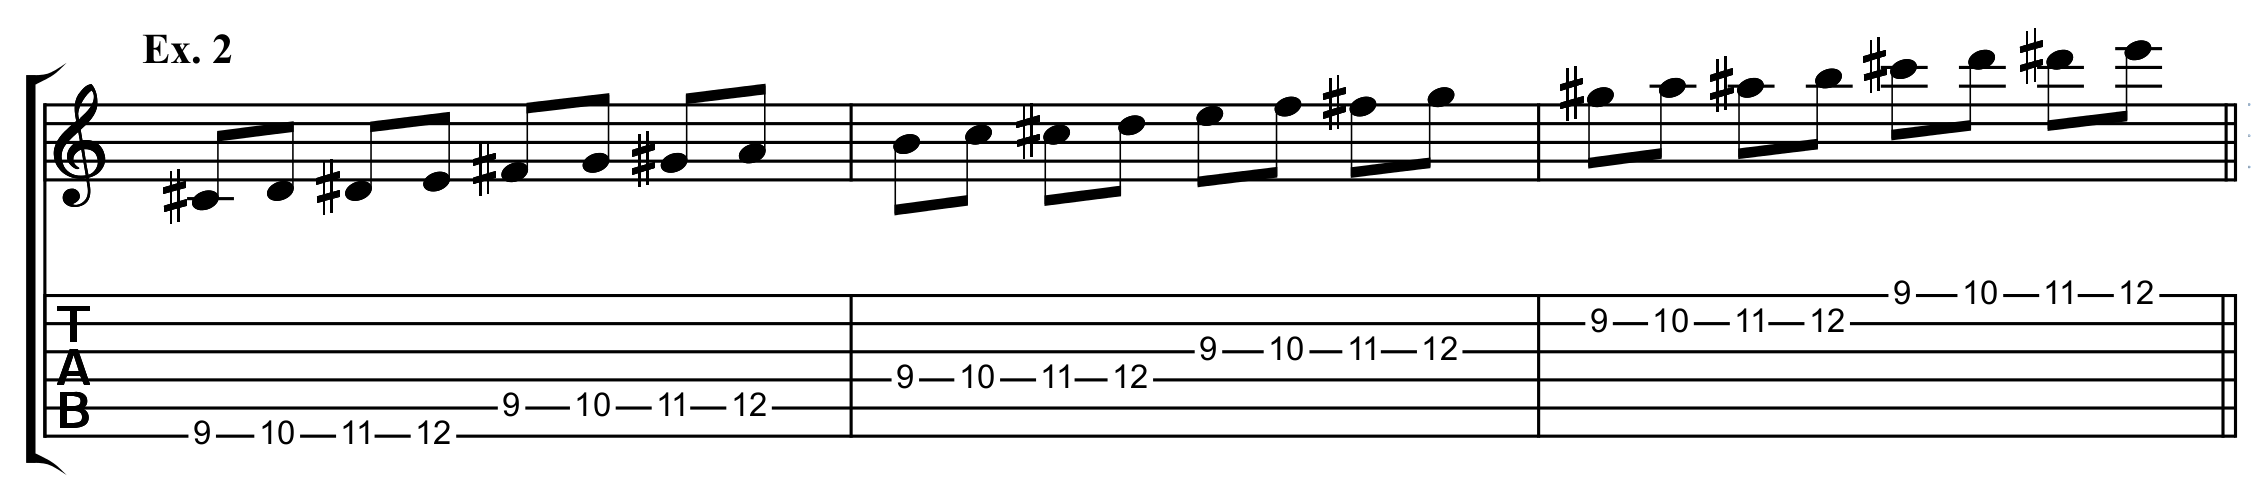 tab for the spider exercise ascending across the guitar neck